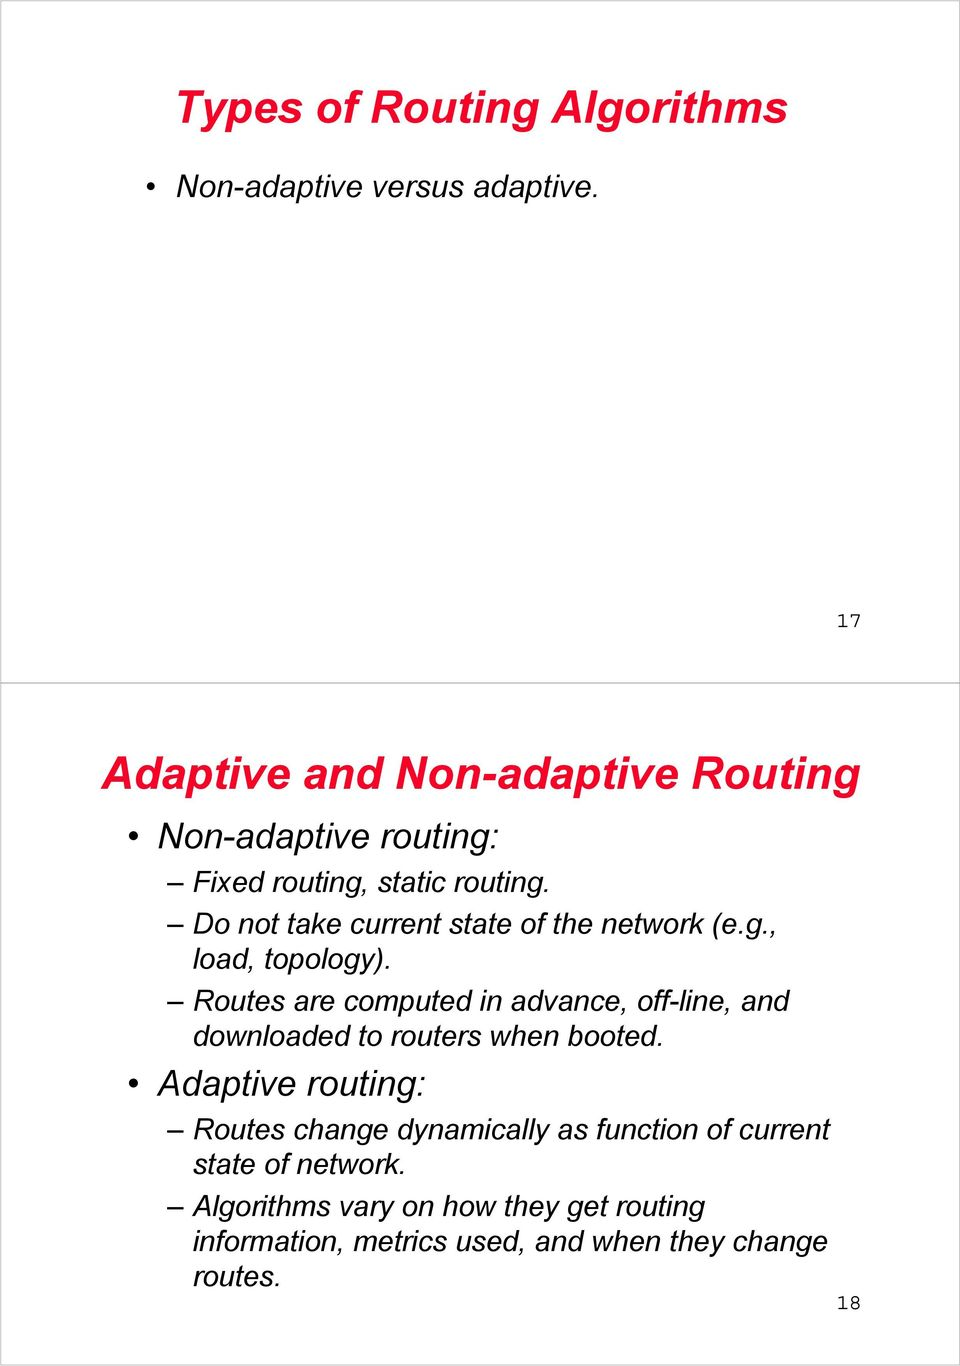 Do not take current state of the network (e.g., load, topology).